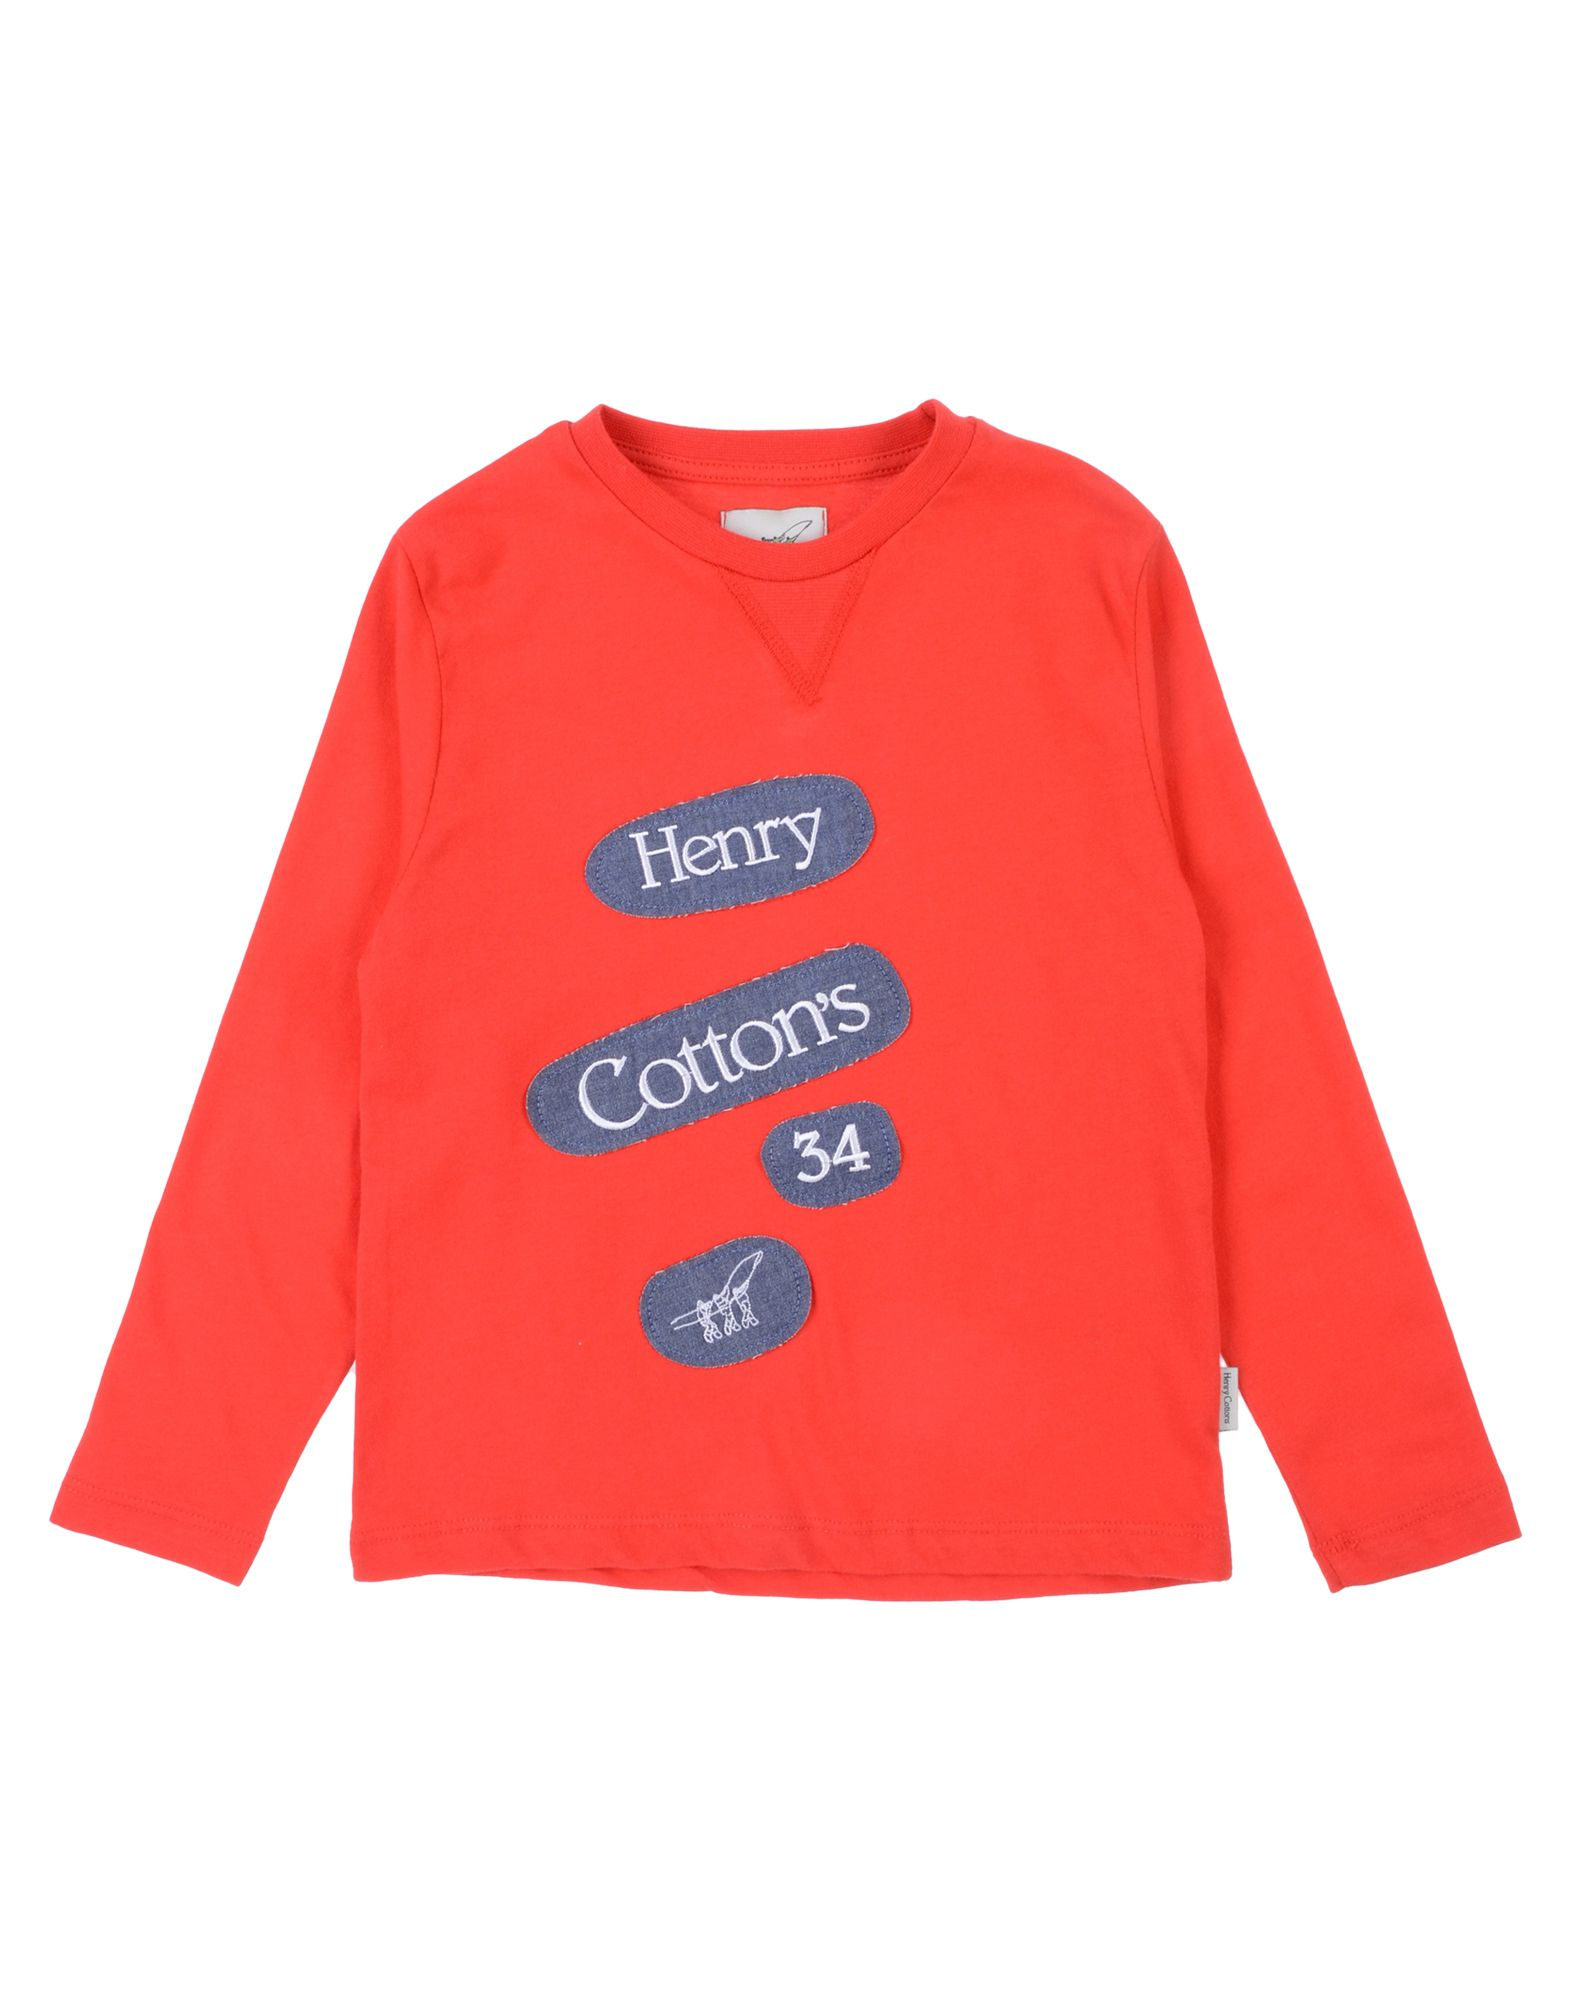 Henry Cotton's Kids' T-shirts In Red